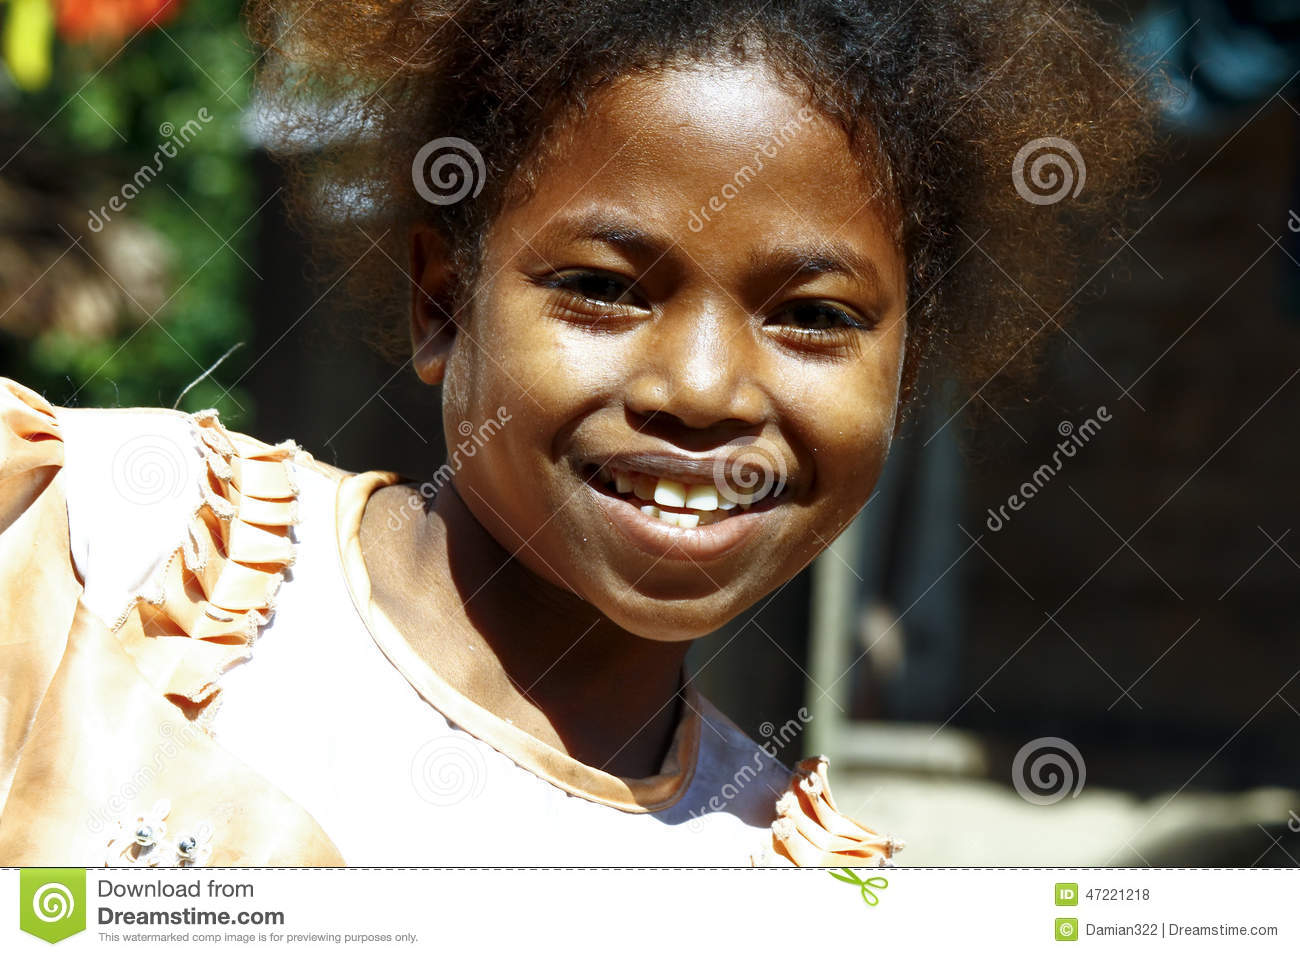 Cute young black African girl - poor child